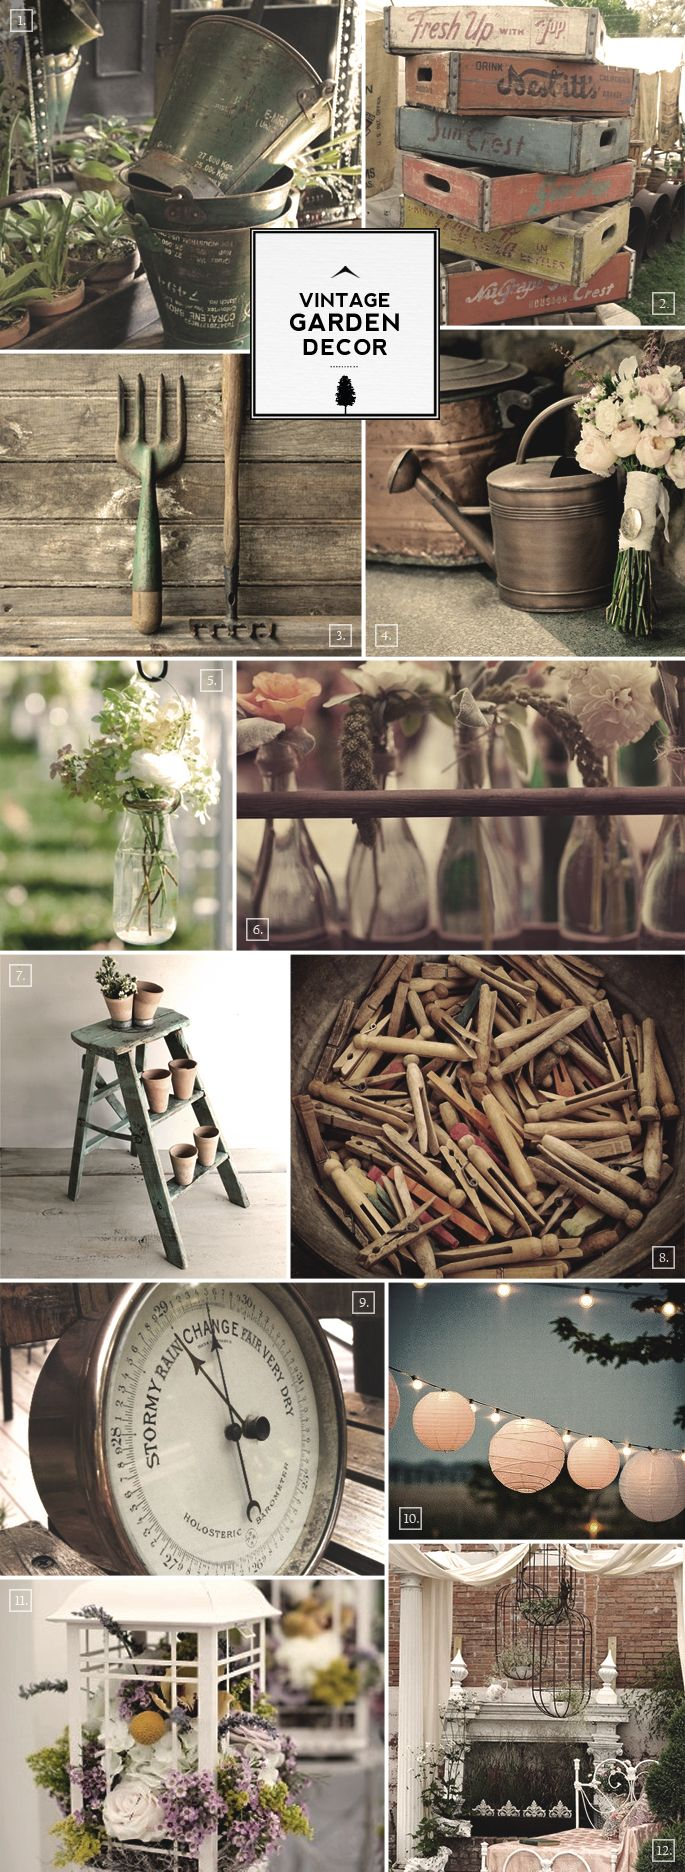 15 diy how to make your backyard awesome ideas 4 vintage outdoor decorvintage garden